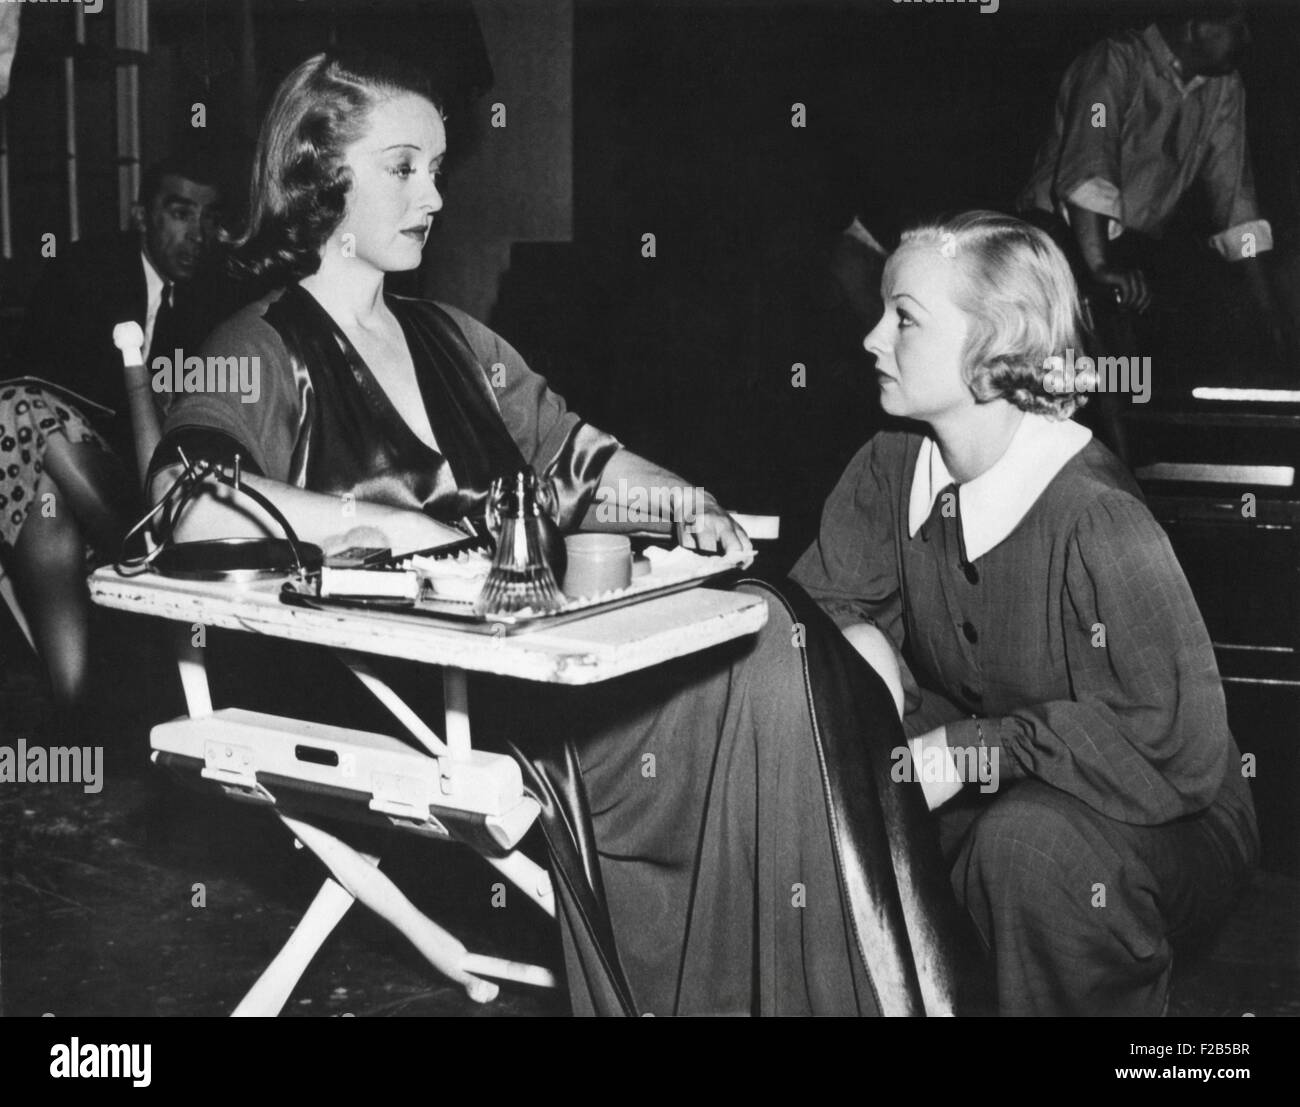 Betty Davis with her stand-in Sally Sage on the set for 'That Certain Woman'. Sage worked as a stand-in - Stock Image